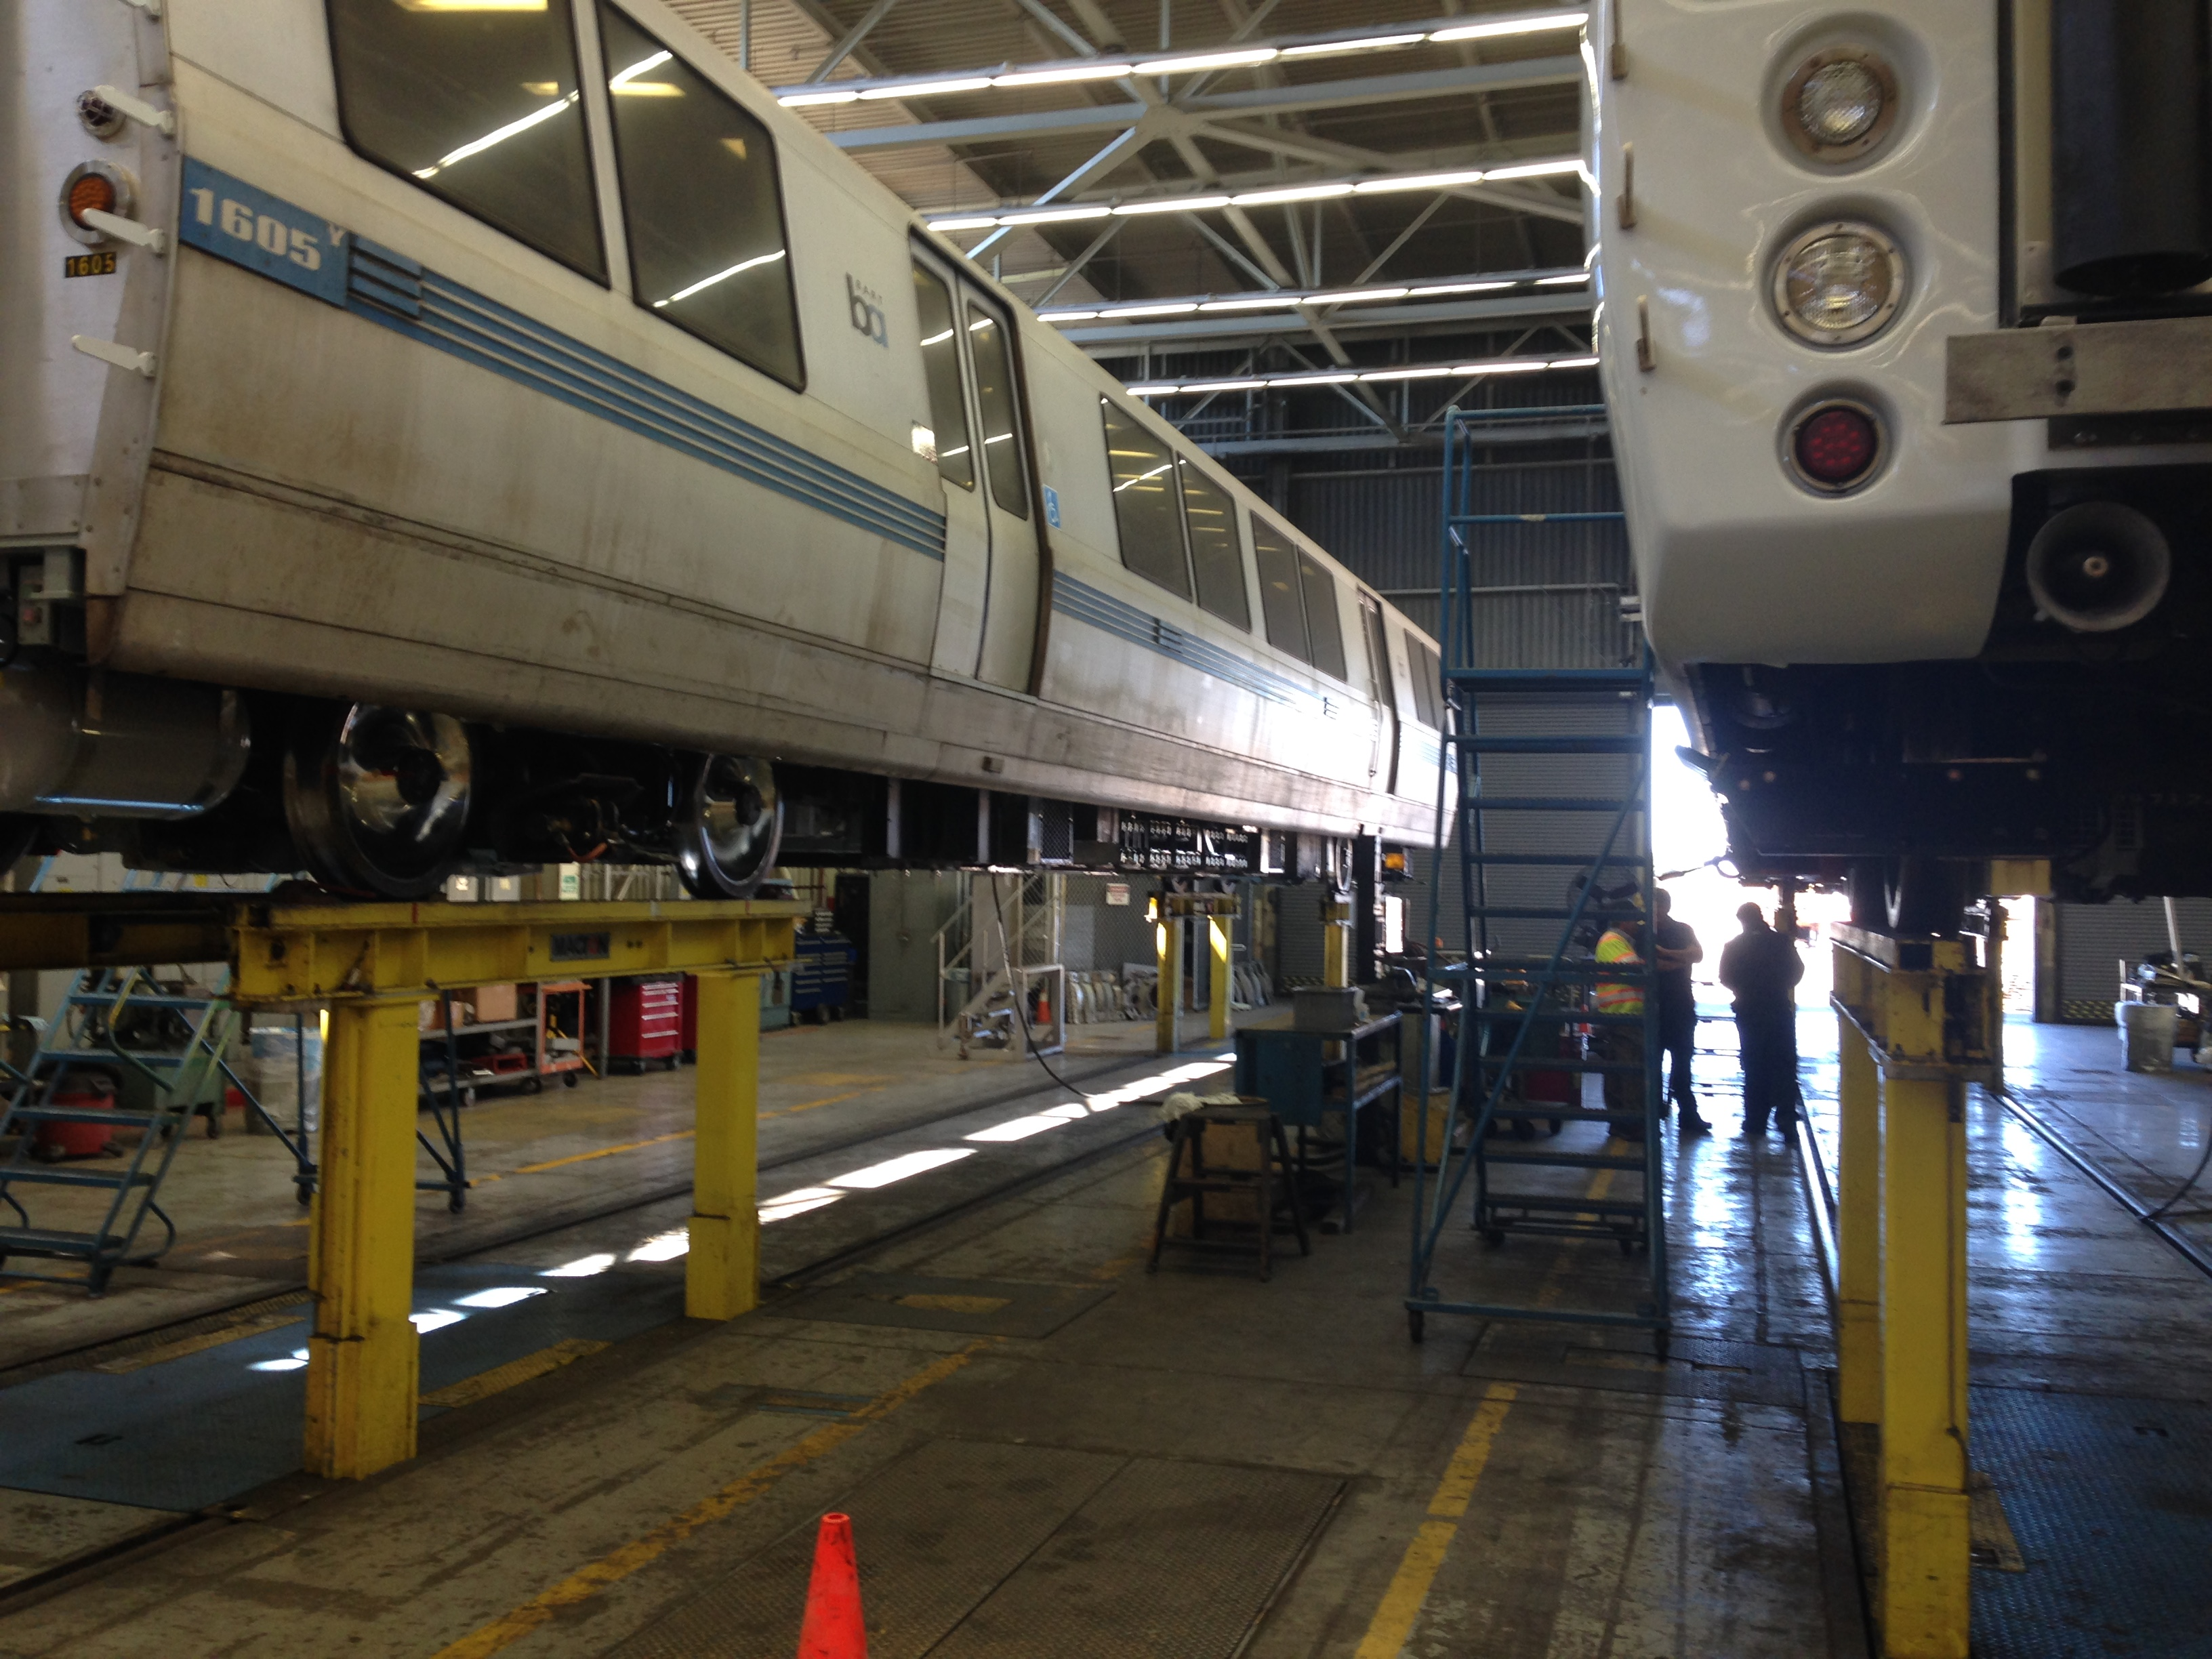 repaired BART trains